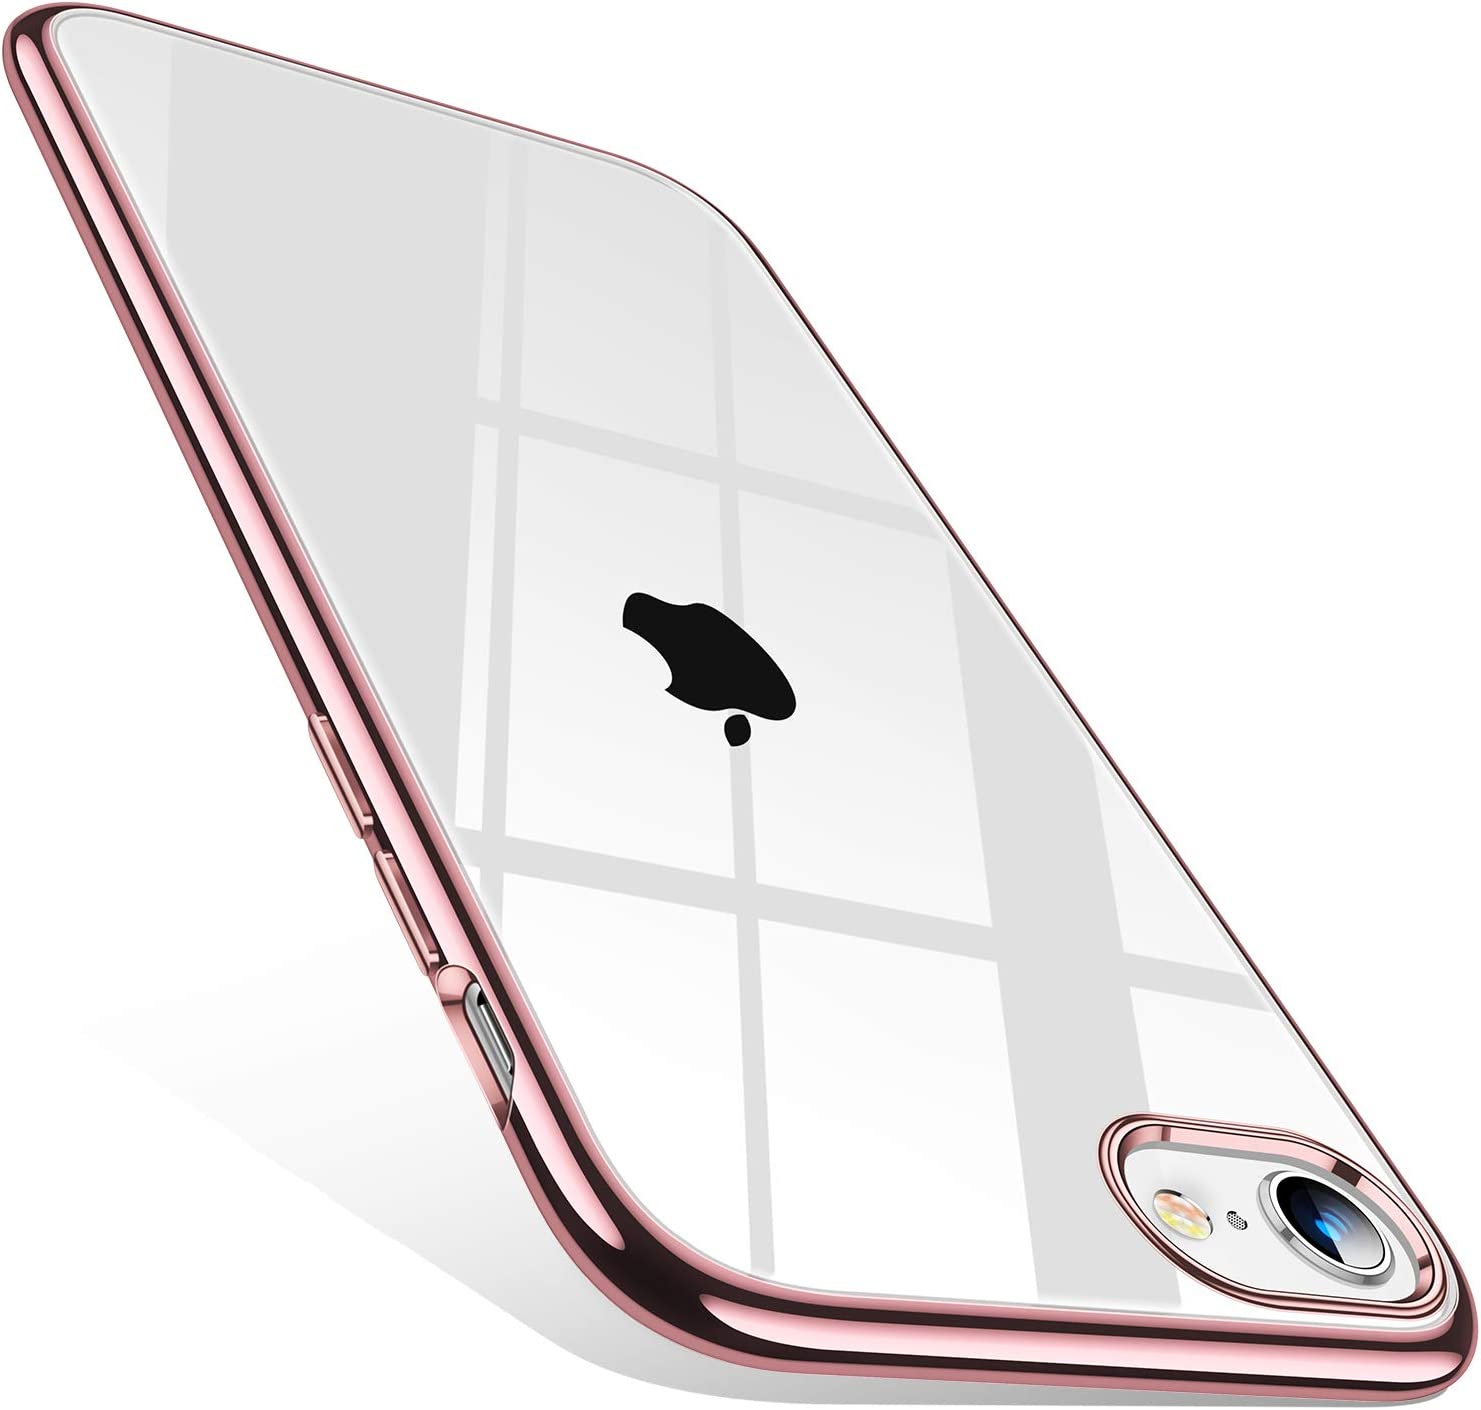 TORRAS Crystal Clear Compatible with iPhone SE 2020 Case/iPhone 8 Case [10X Anti-Yellowing] Ultra Slim Soft Shockproof Thin Phone Case for iPhone 7/8/SE 2020 (4.7 inch), Rose Gold